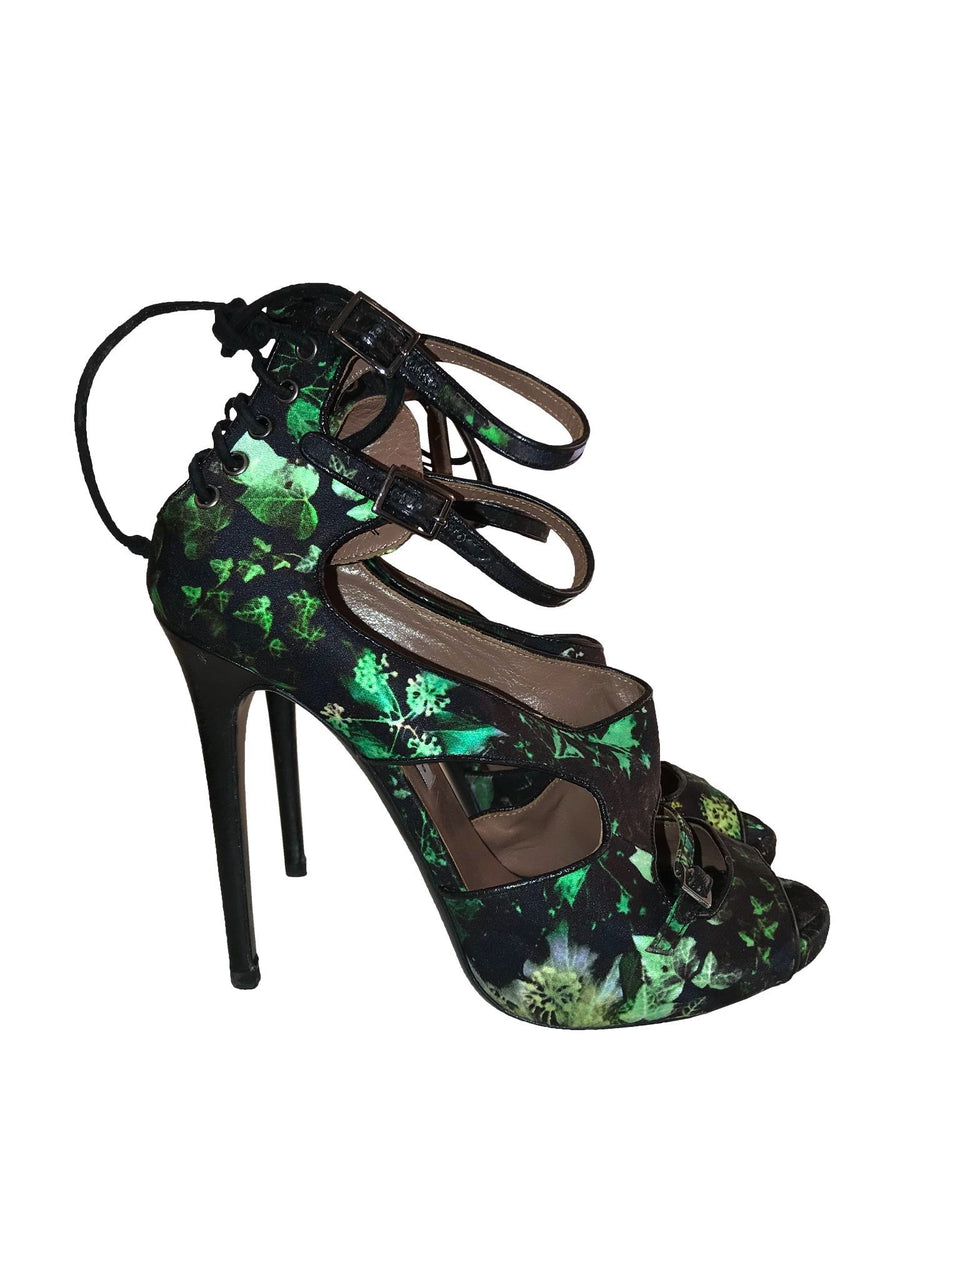 Tabitha Simmons Green Printed Strappy Sandals